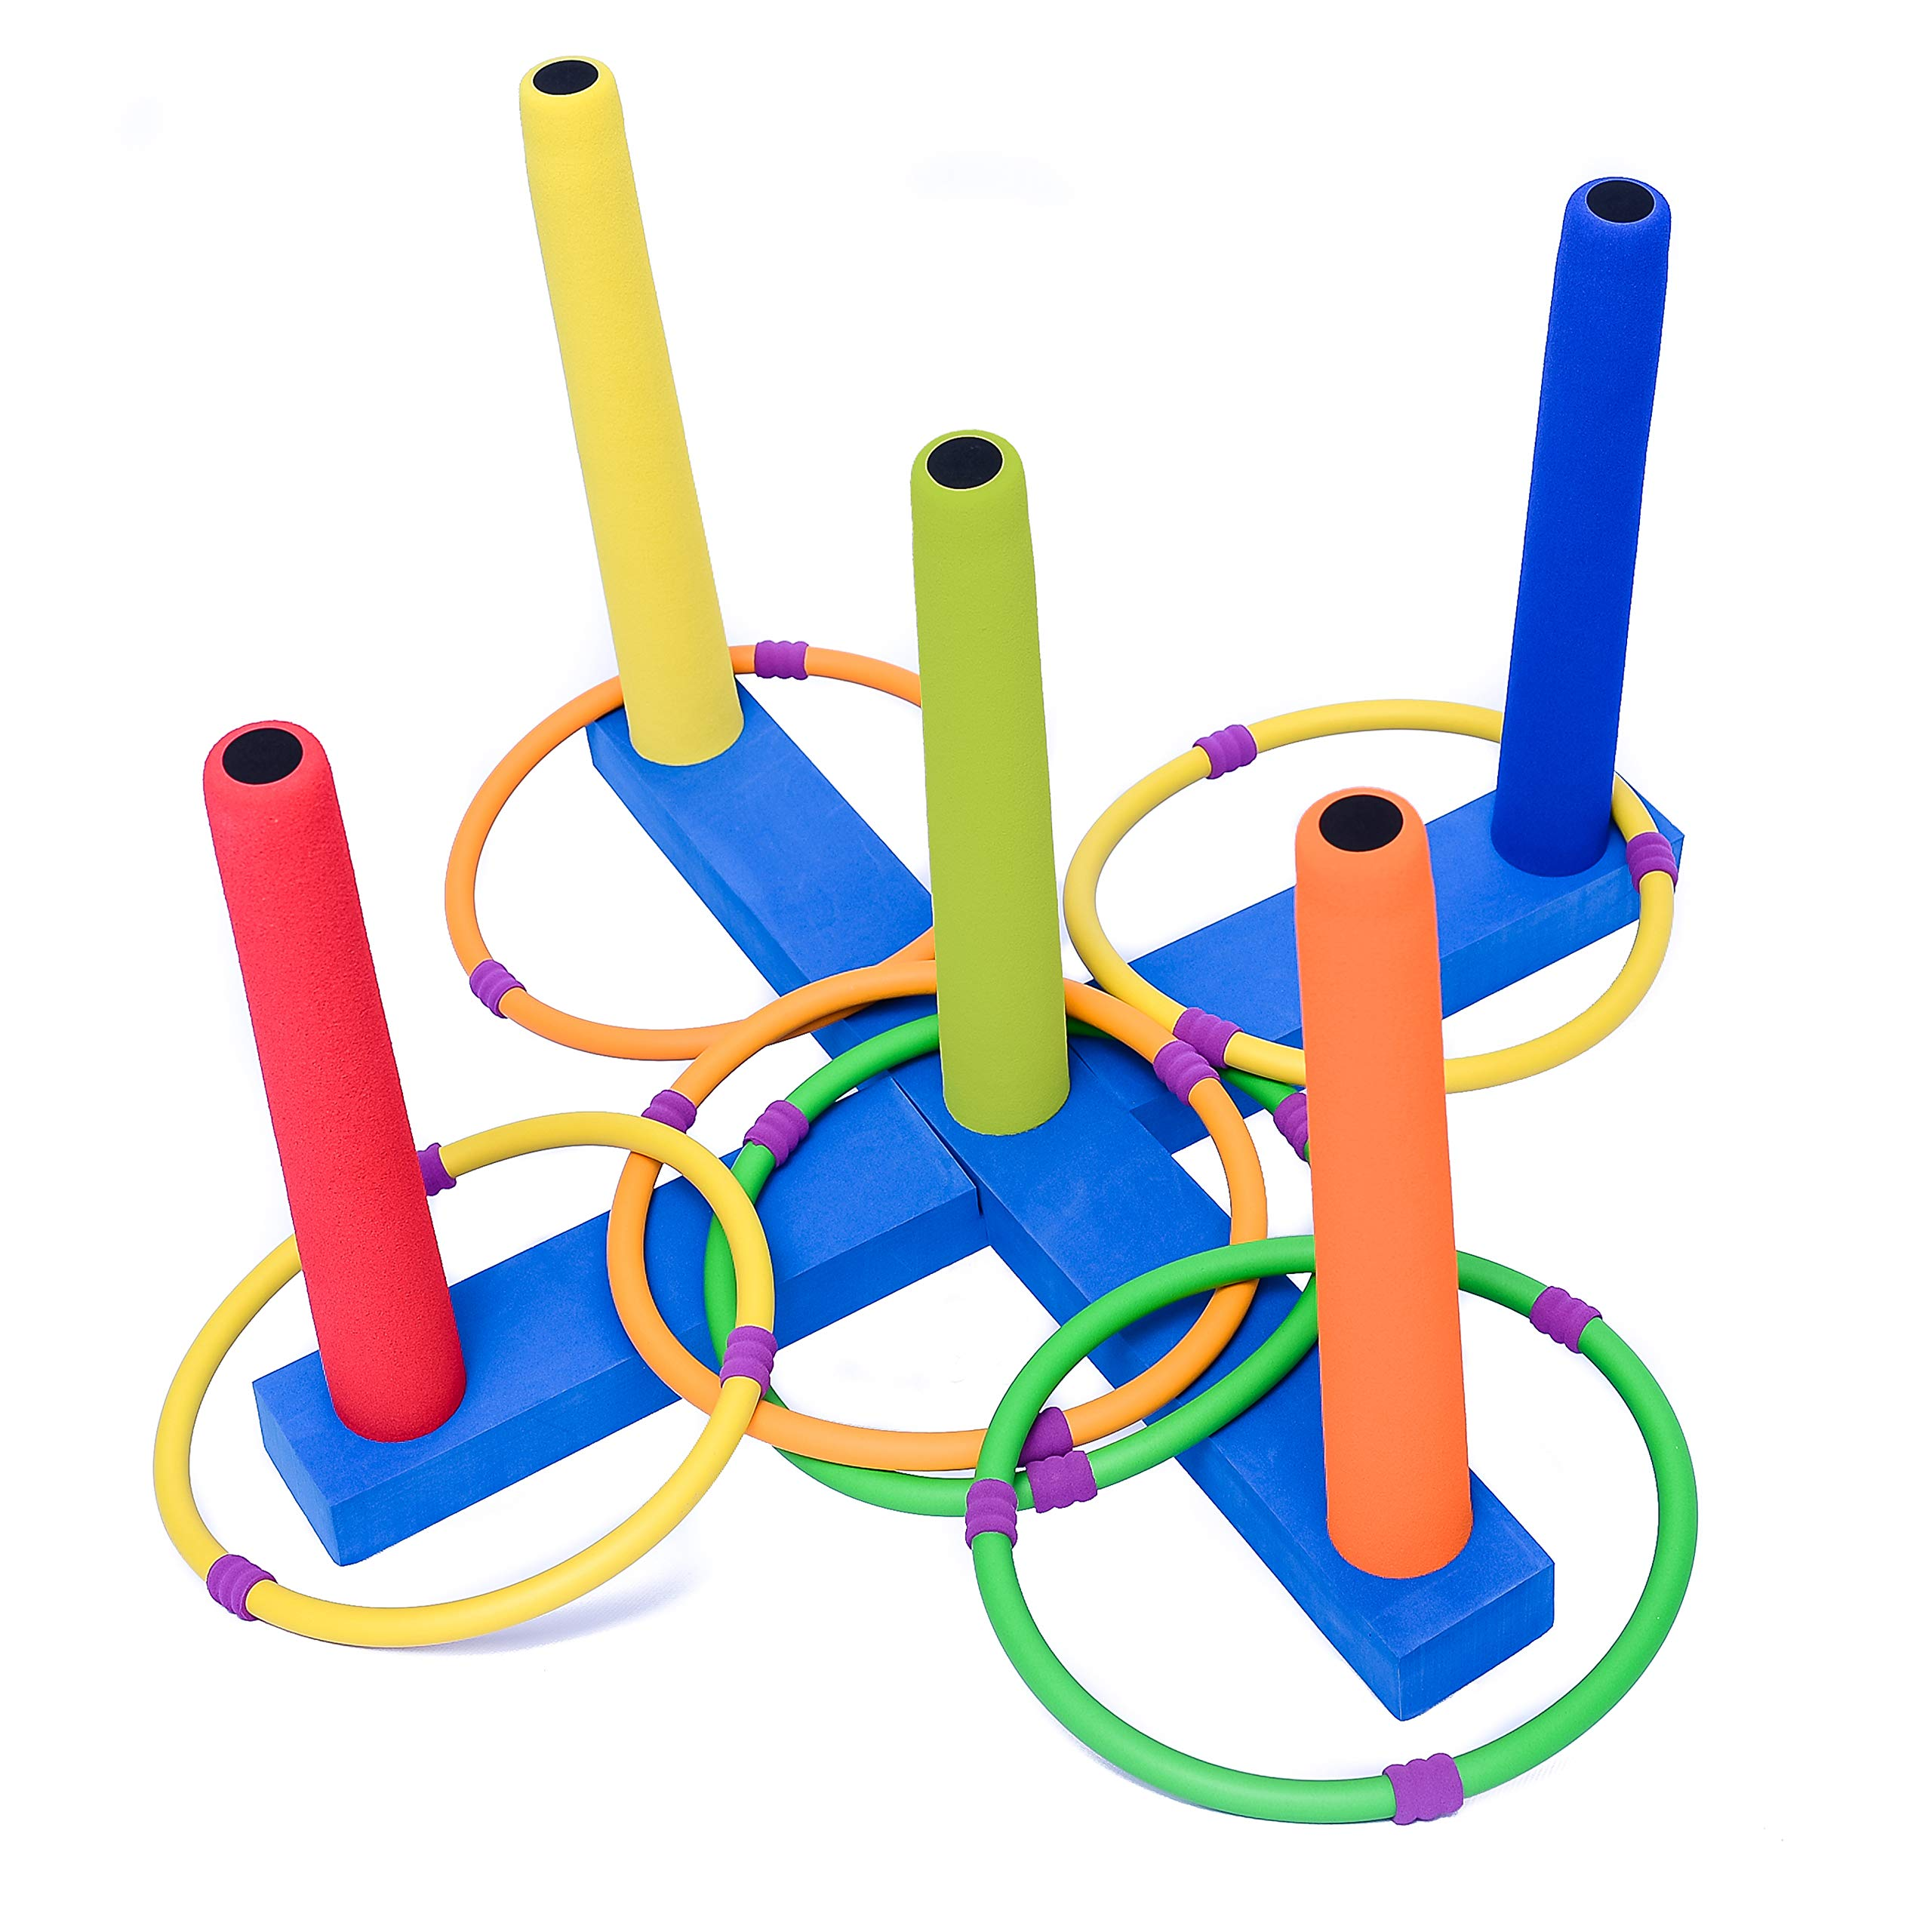 Kiddie Play Ring Toss Game for Kids with 6 Rings by Kiddie Play